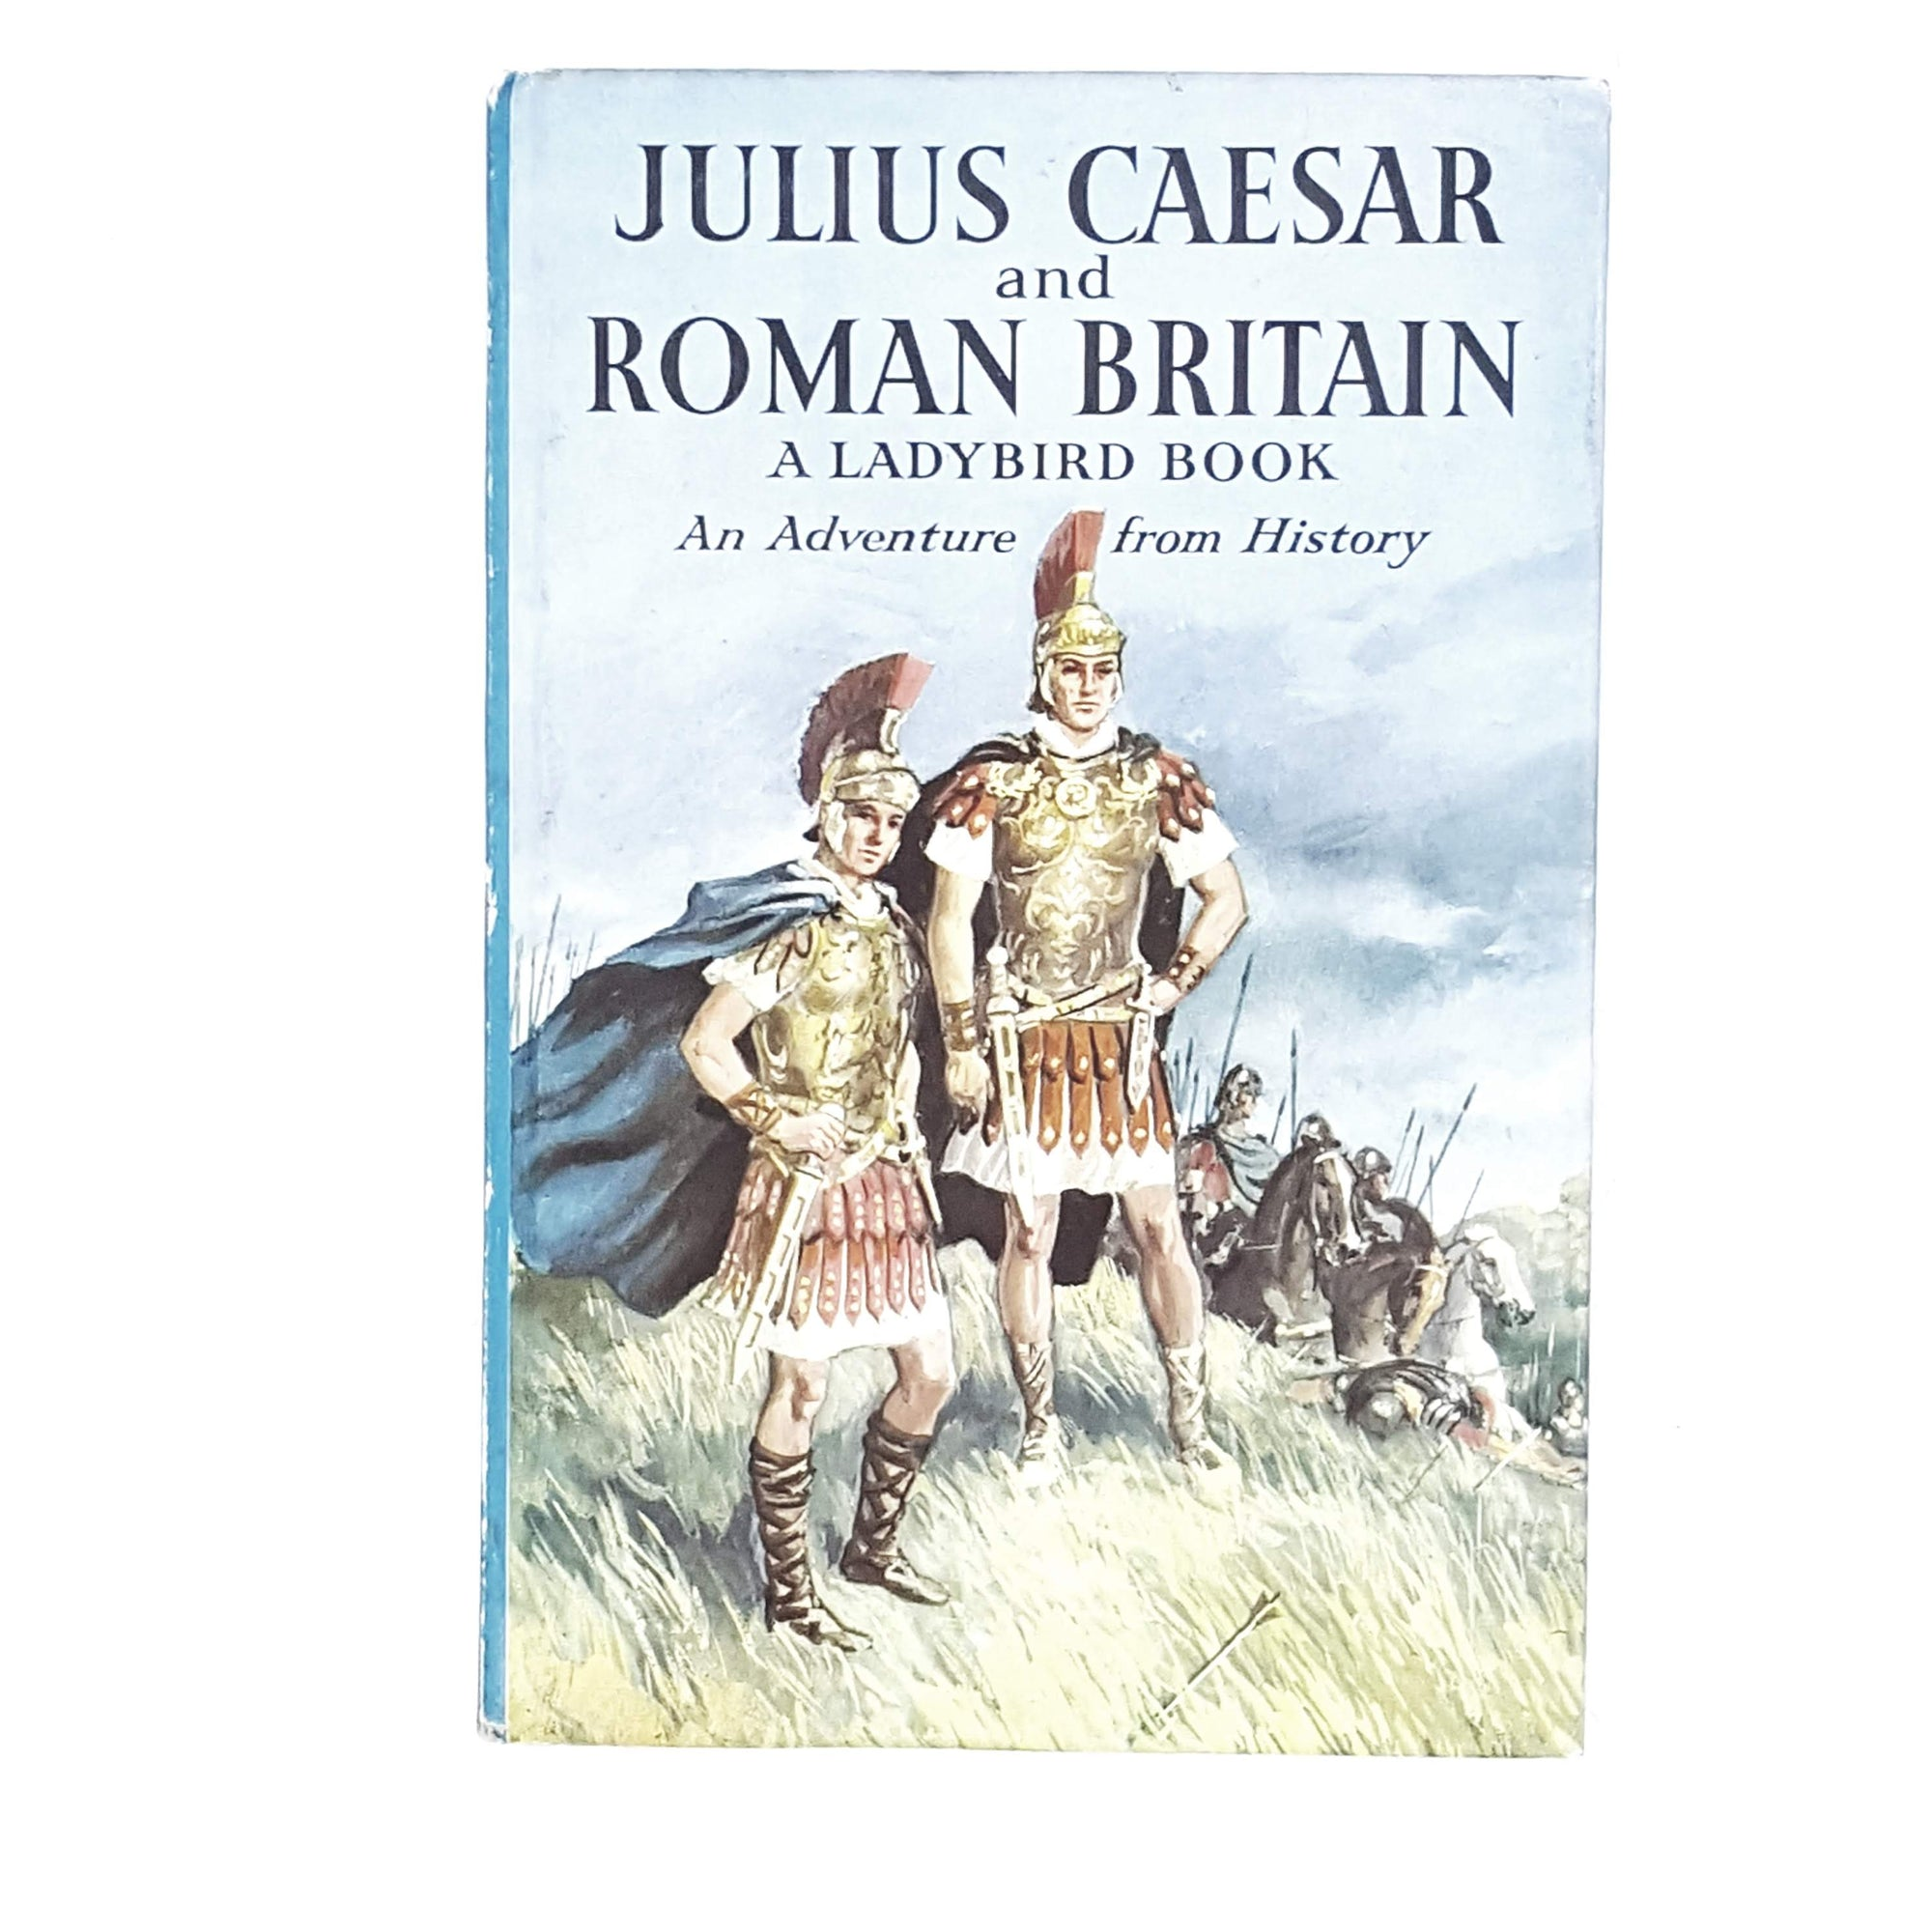 ladybird-history-julius-caeser-and-roman-britain-1959-vintage-online-bookstore-country-house-library